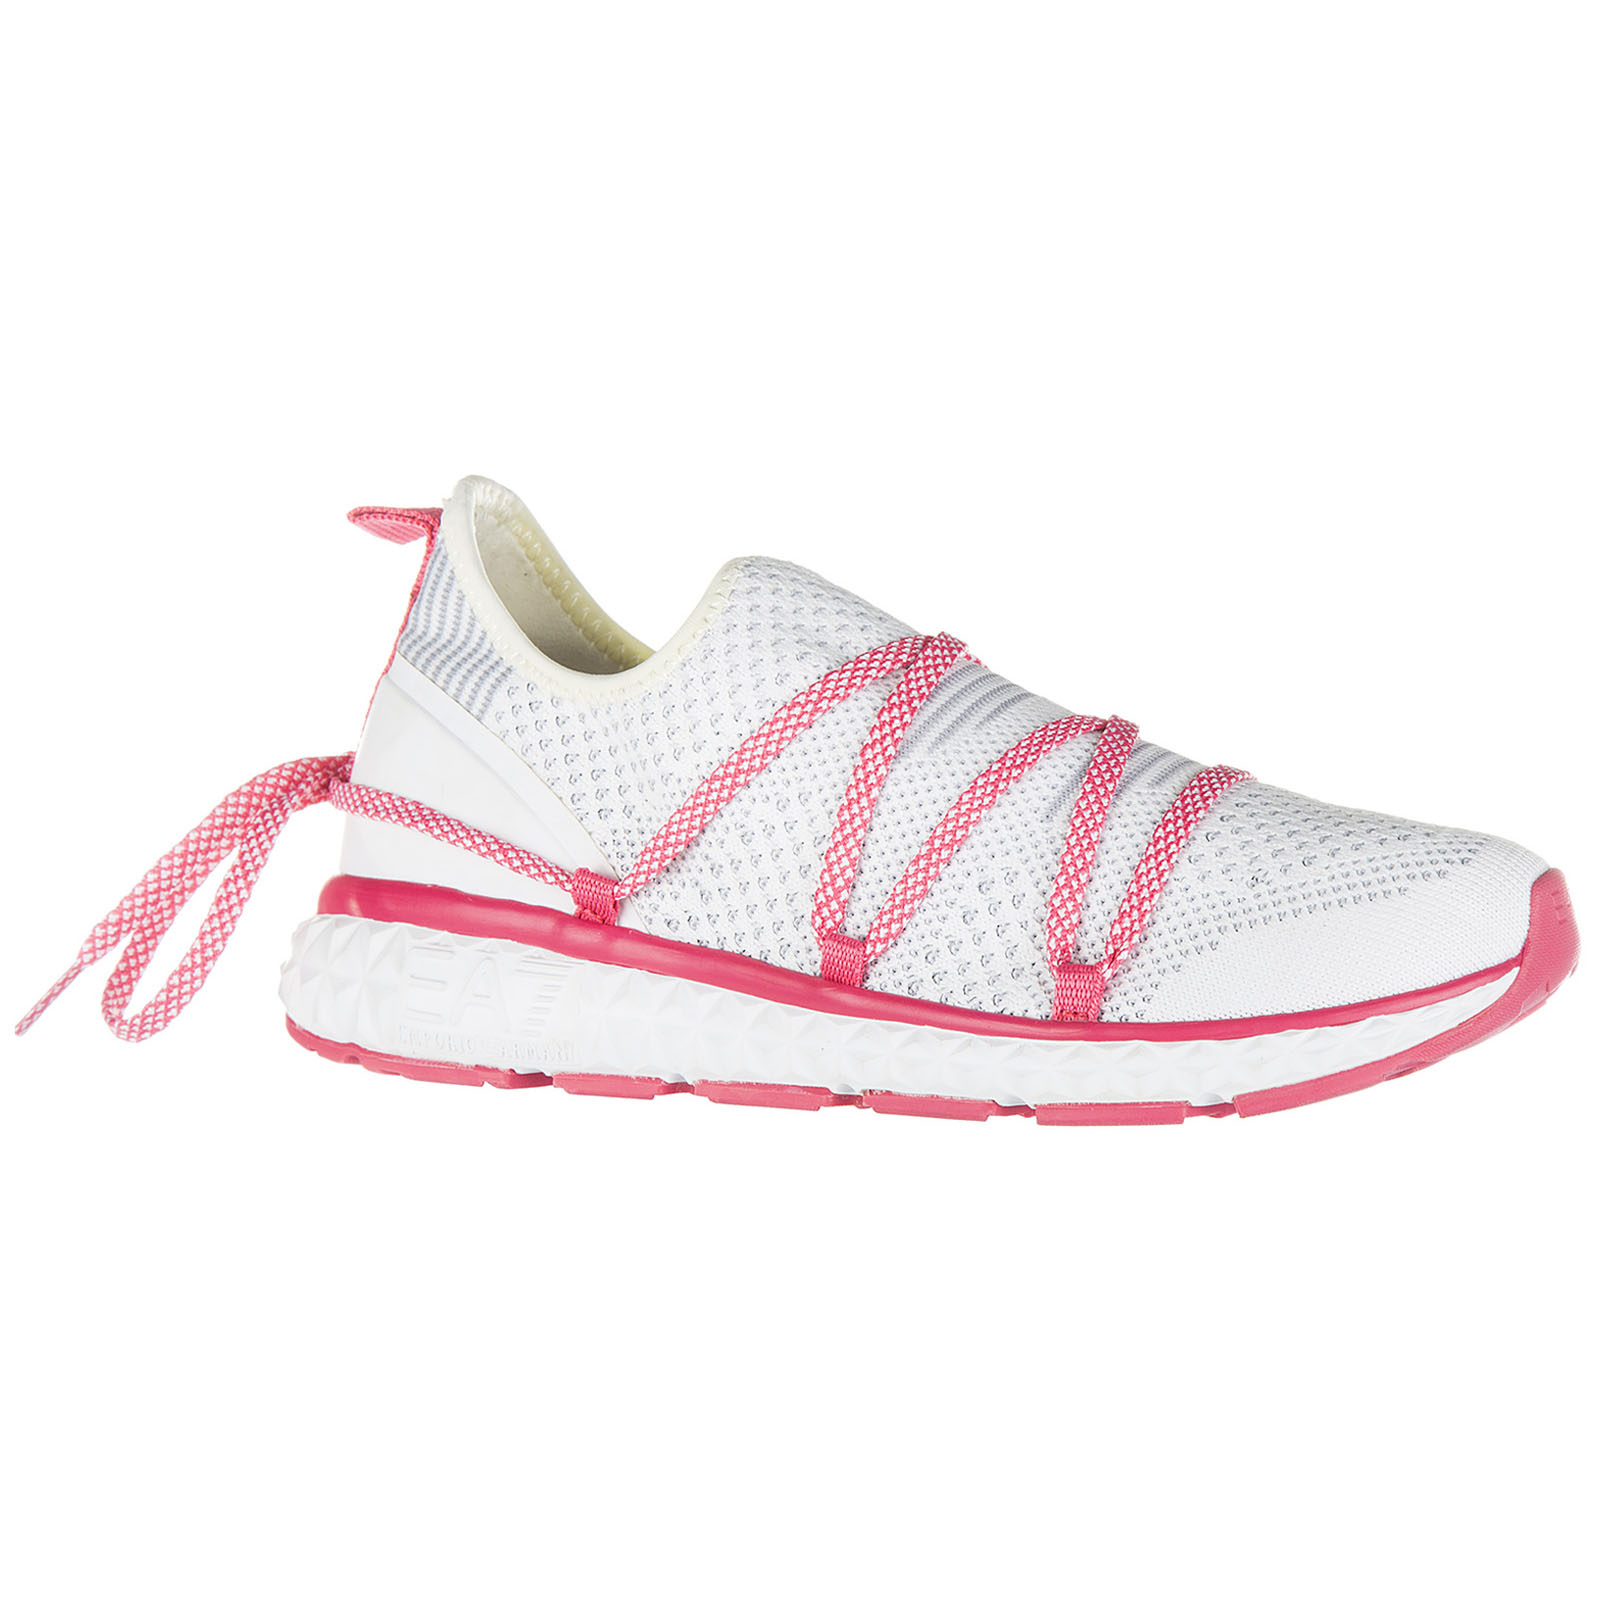 Women's shoes trainers sneakers  light spirit 7.0